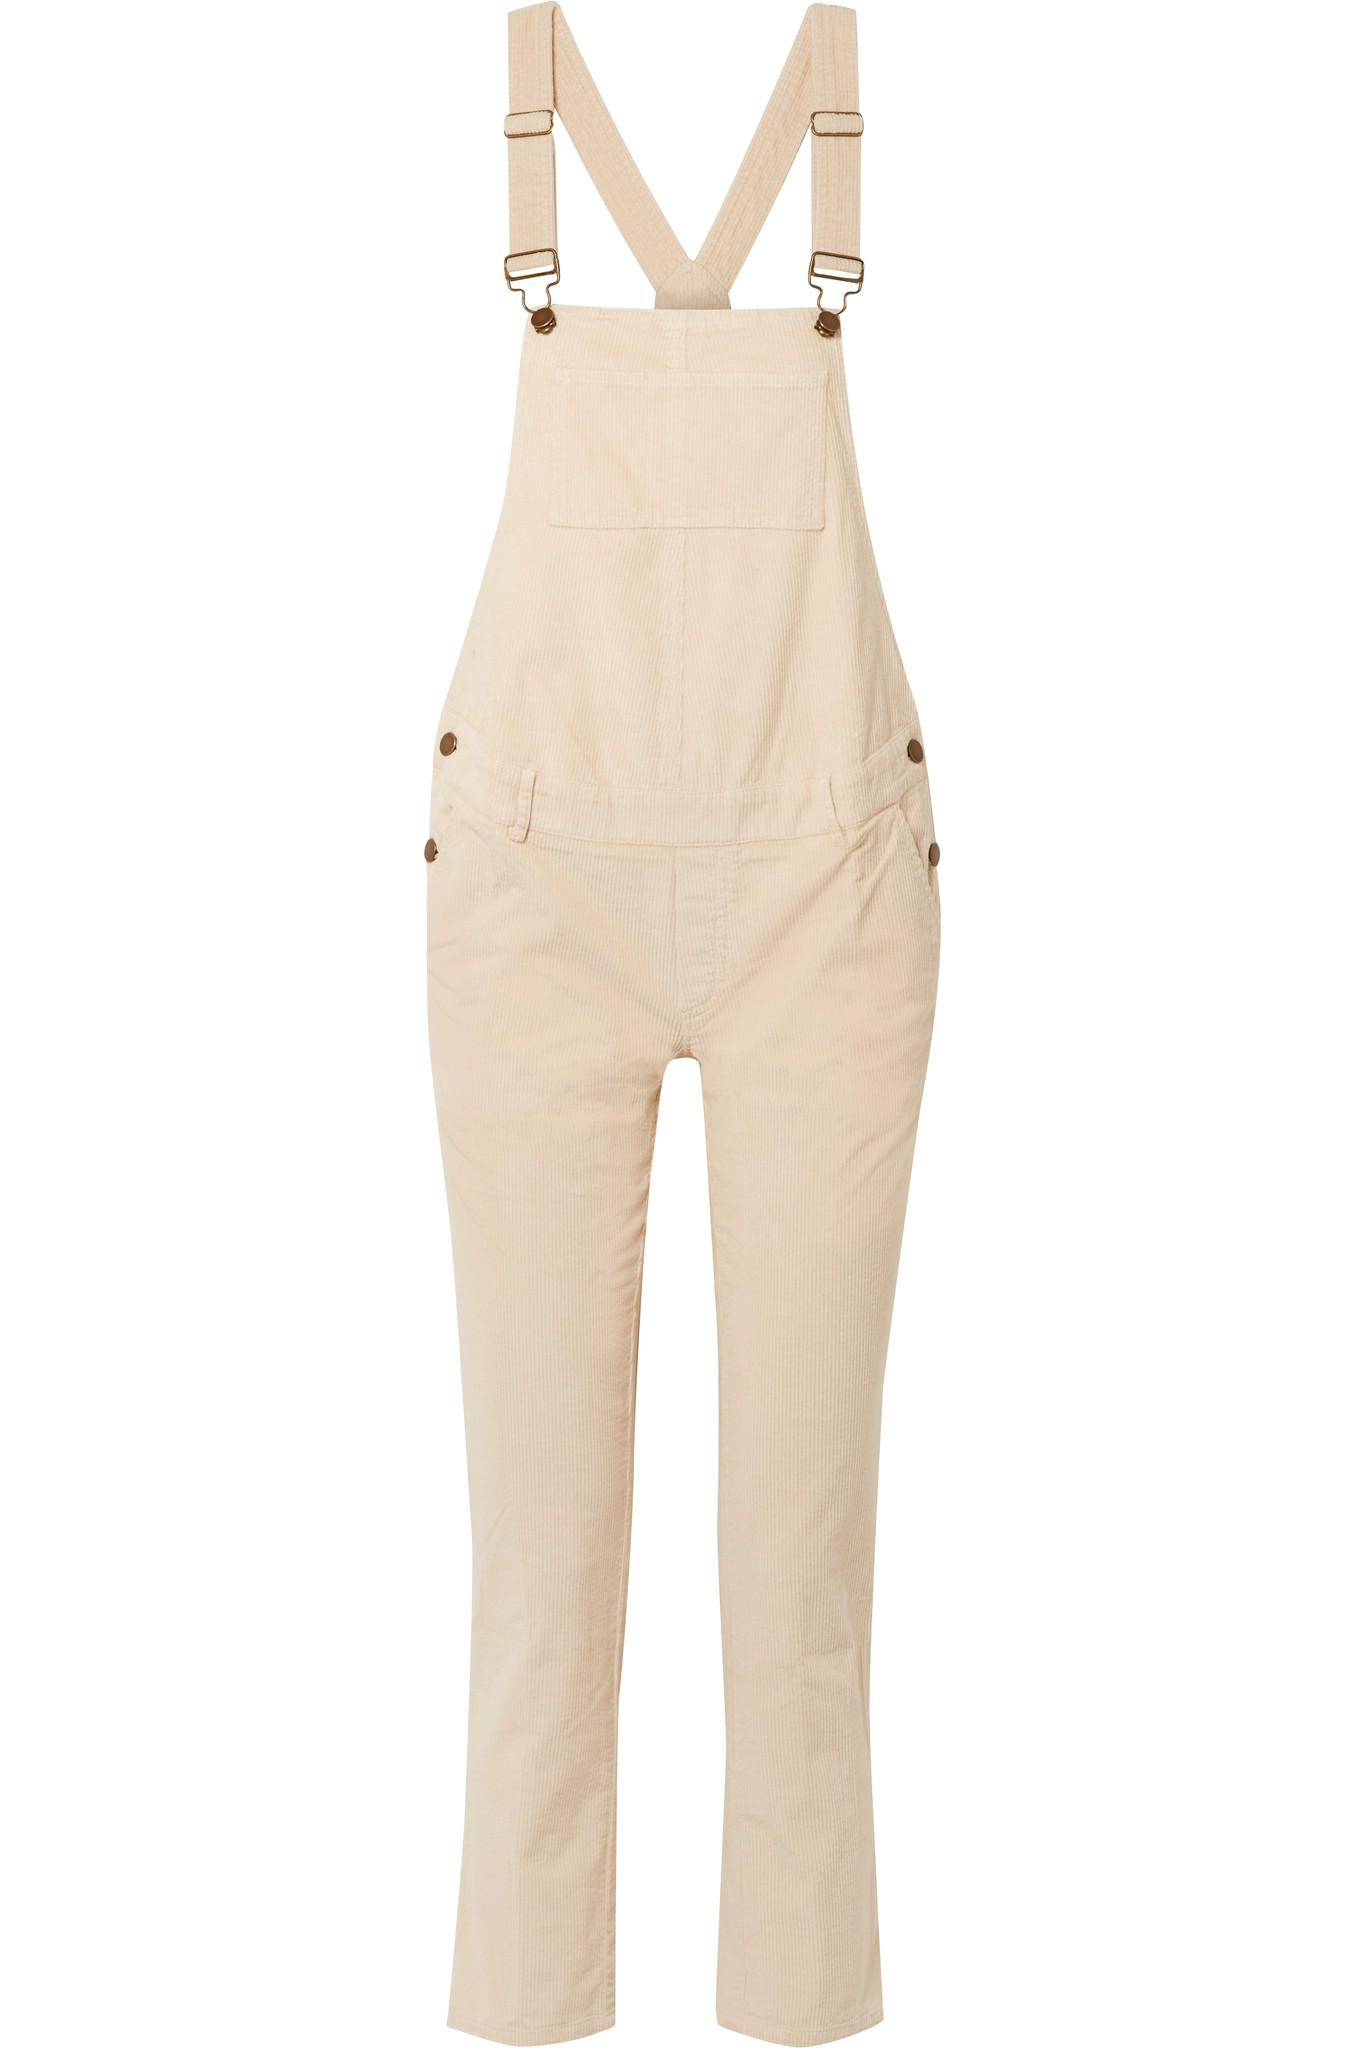 513505c6cd2a Hatch The Cord Cotton-blend Corduroy Overalls in White - Lyst